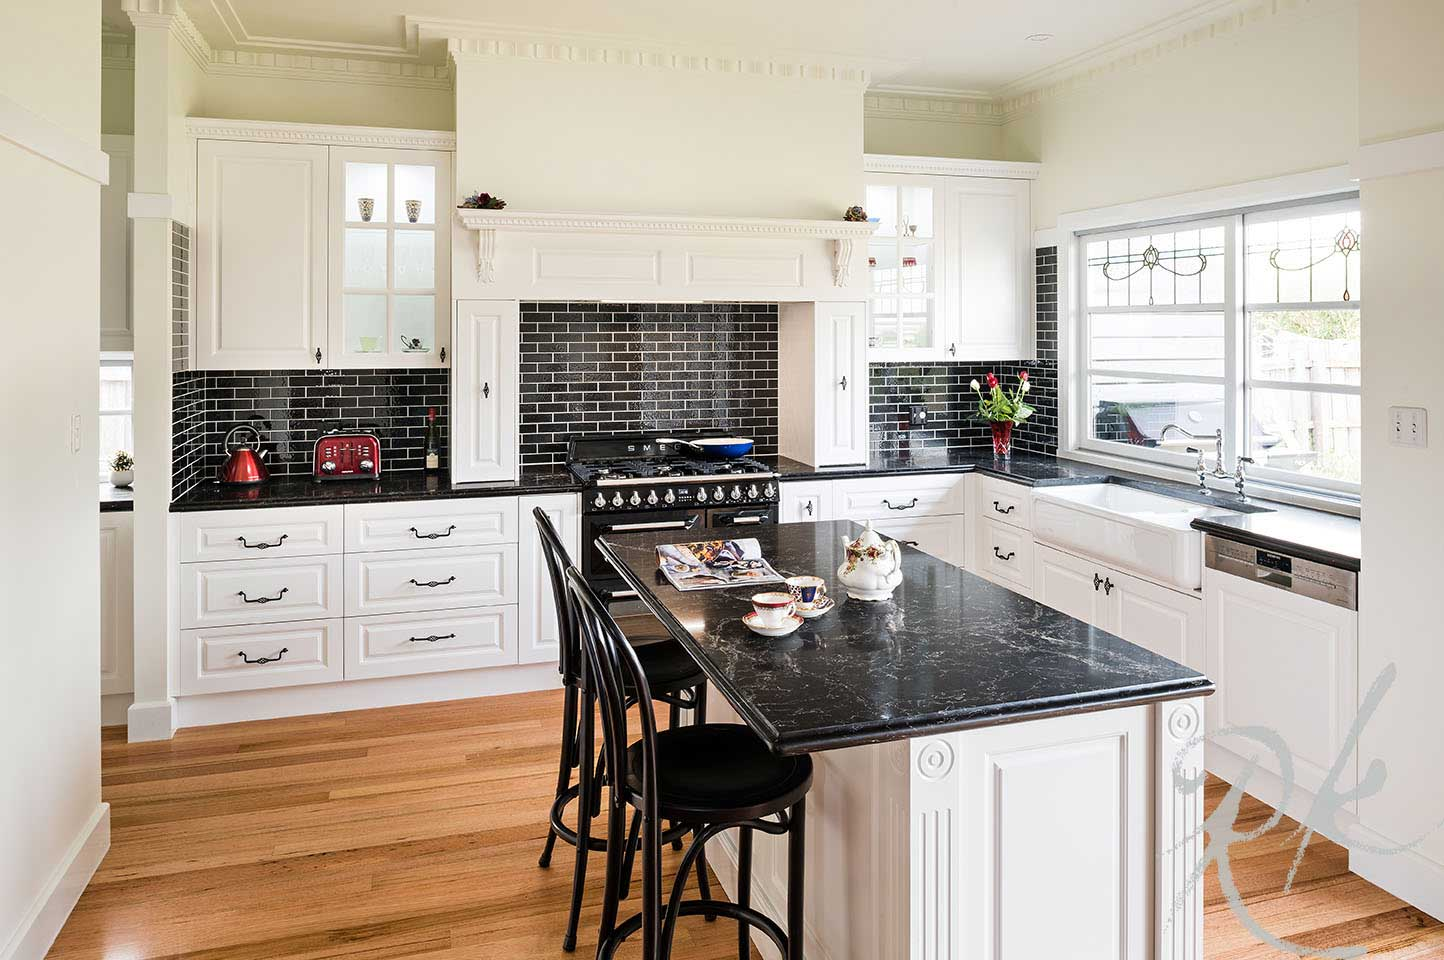 Coburg kitchen gallery rosemount kitchens for French provincial kitchen designs melbourne